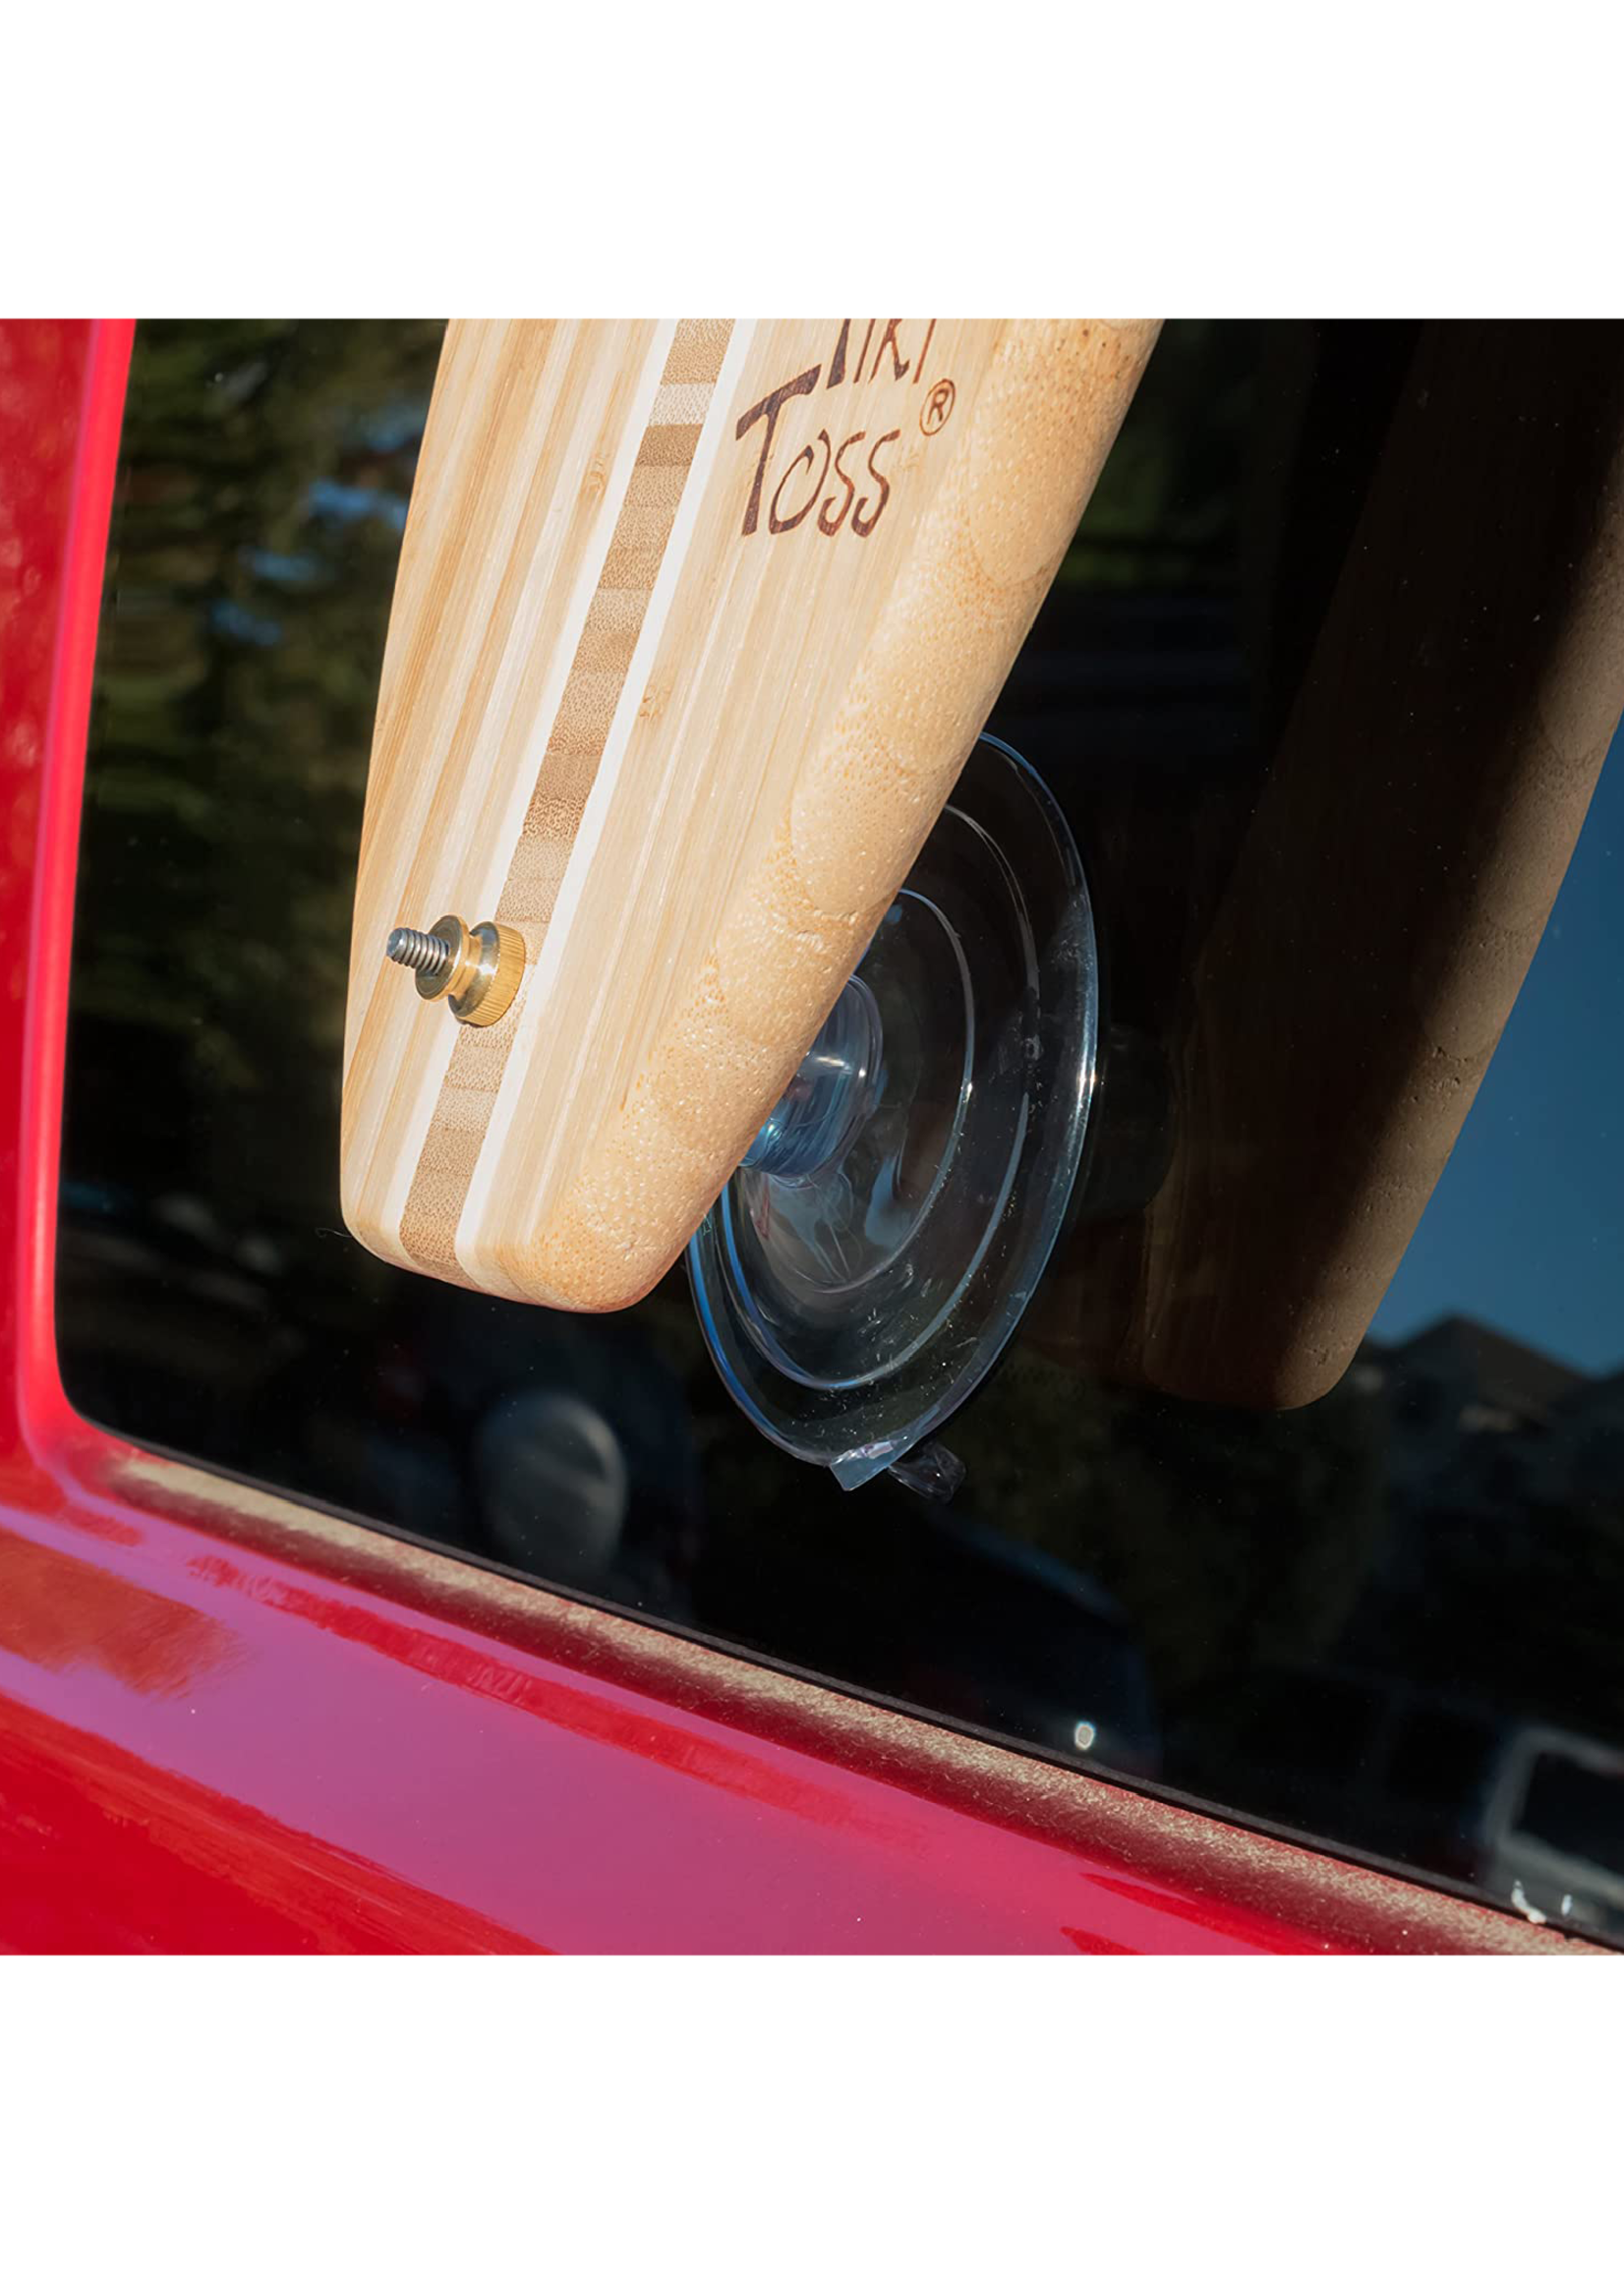 Tiki Toss Tailgate/RV Suction Cups